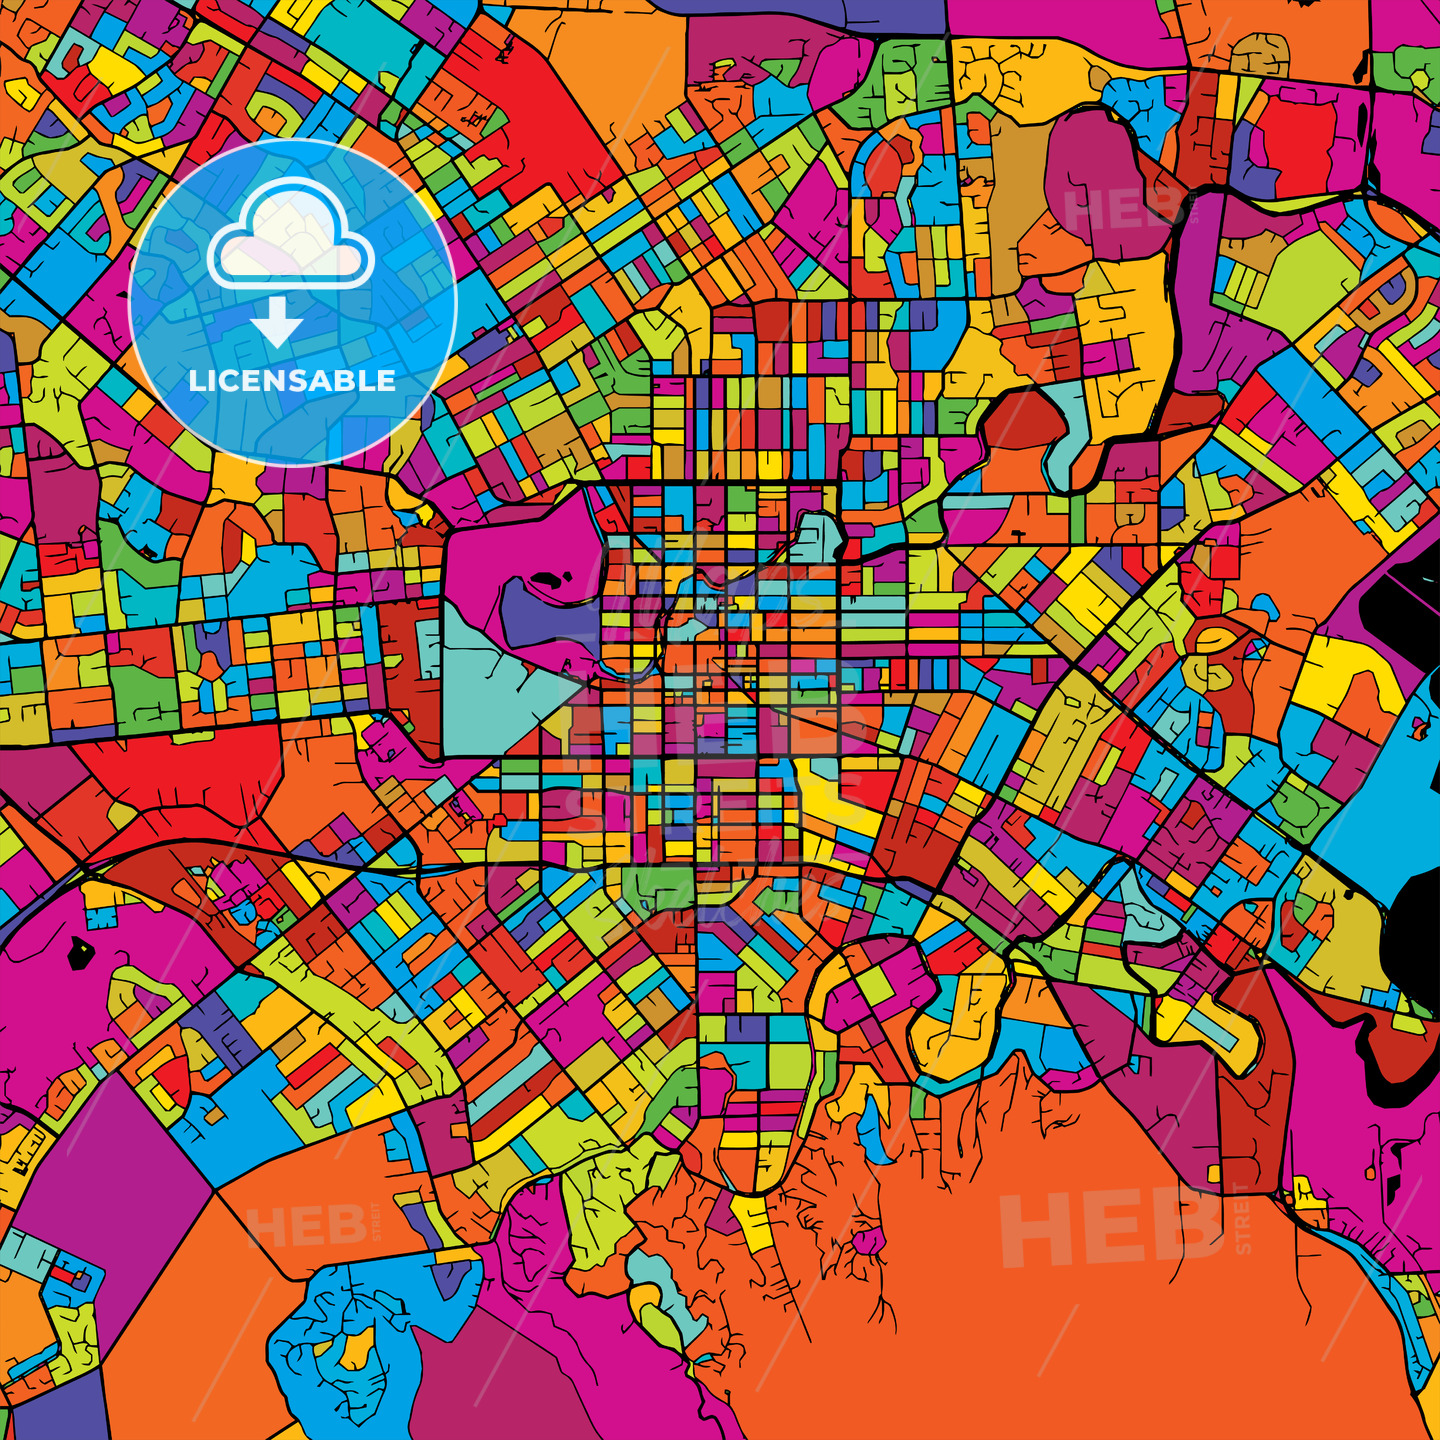 Christchurch Colorful Vector Map on Black - HEBSTREIT's Sketches